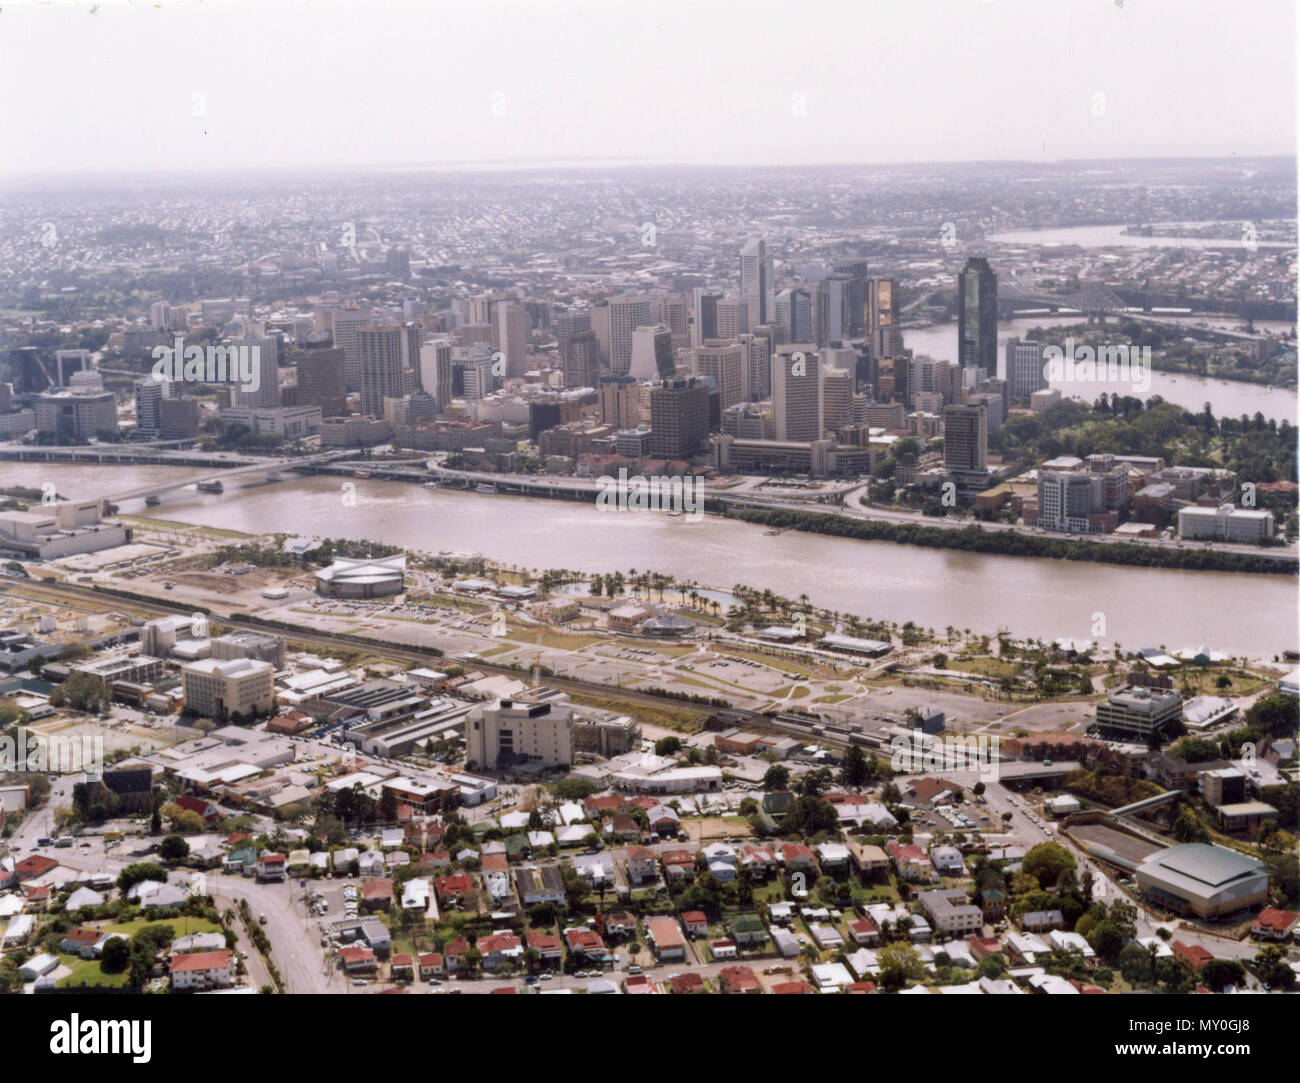 Brisbane and the new Southbank, August 1992. - Stock Image